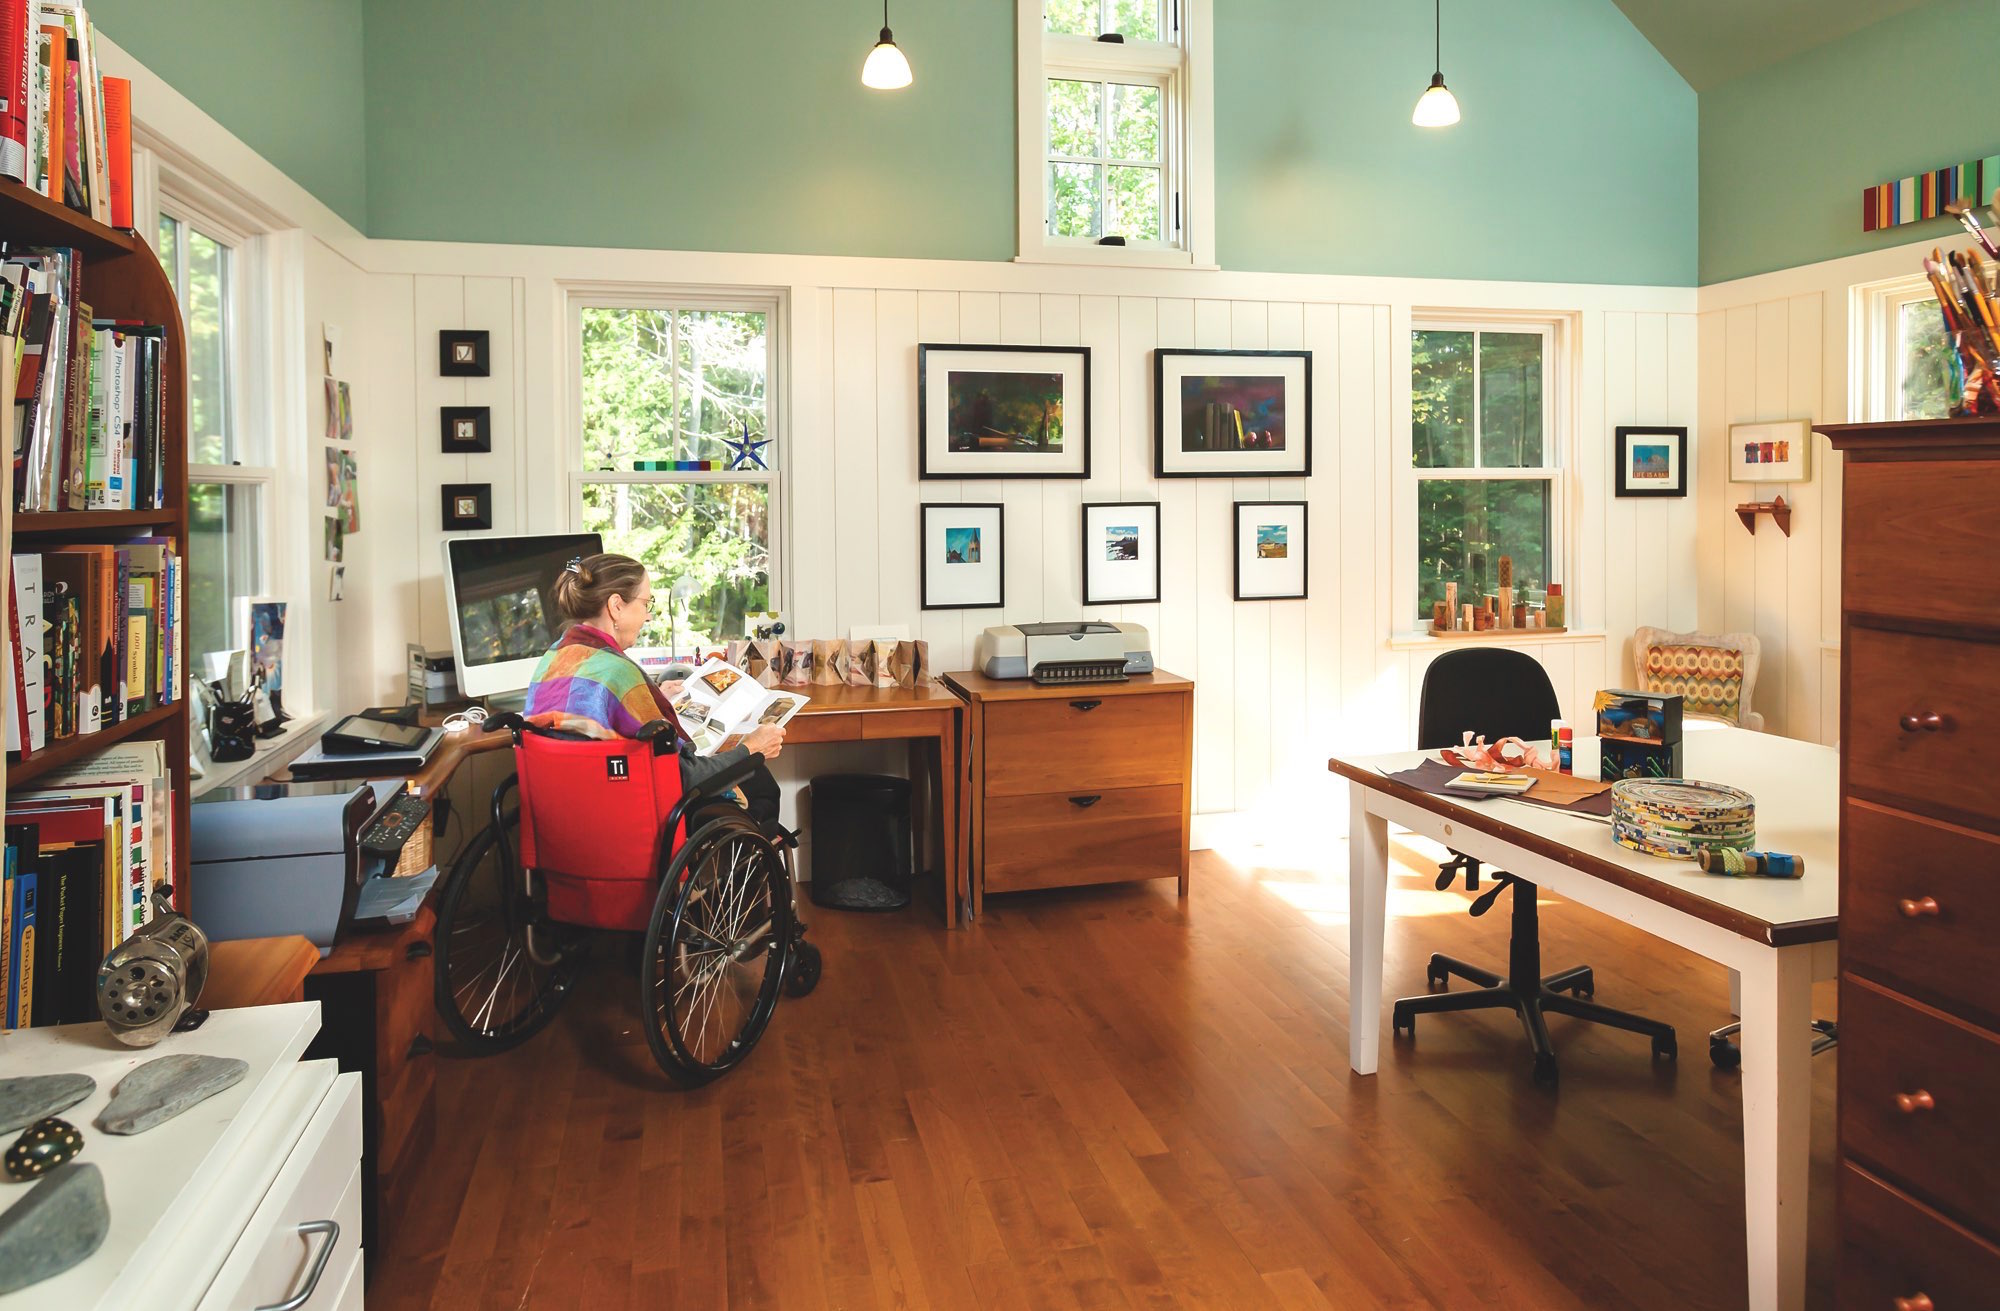 Be The Solution: A Universal Design Primer